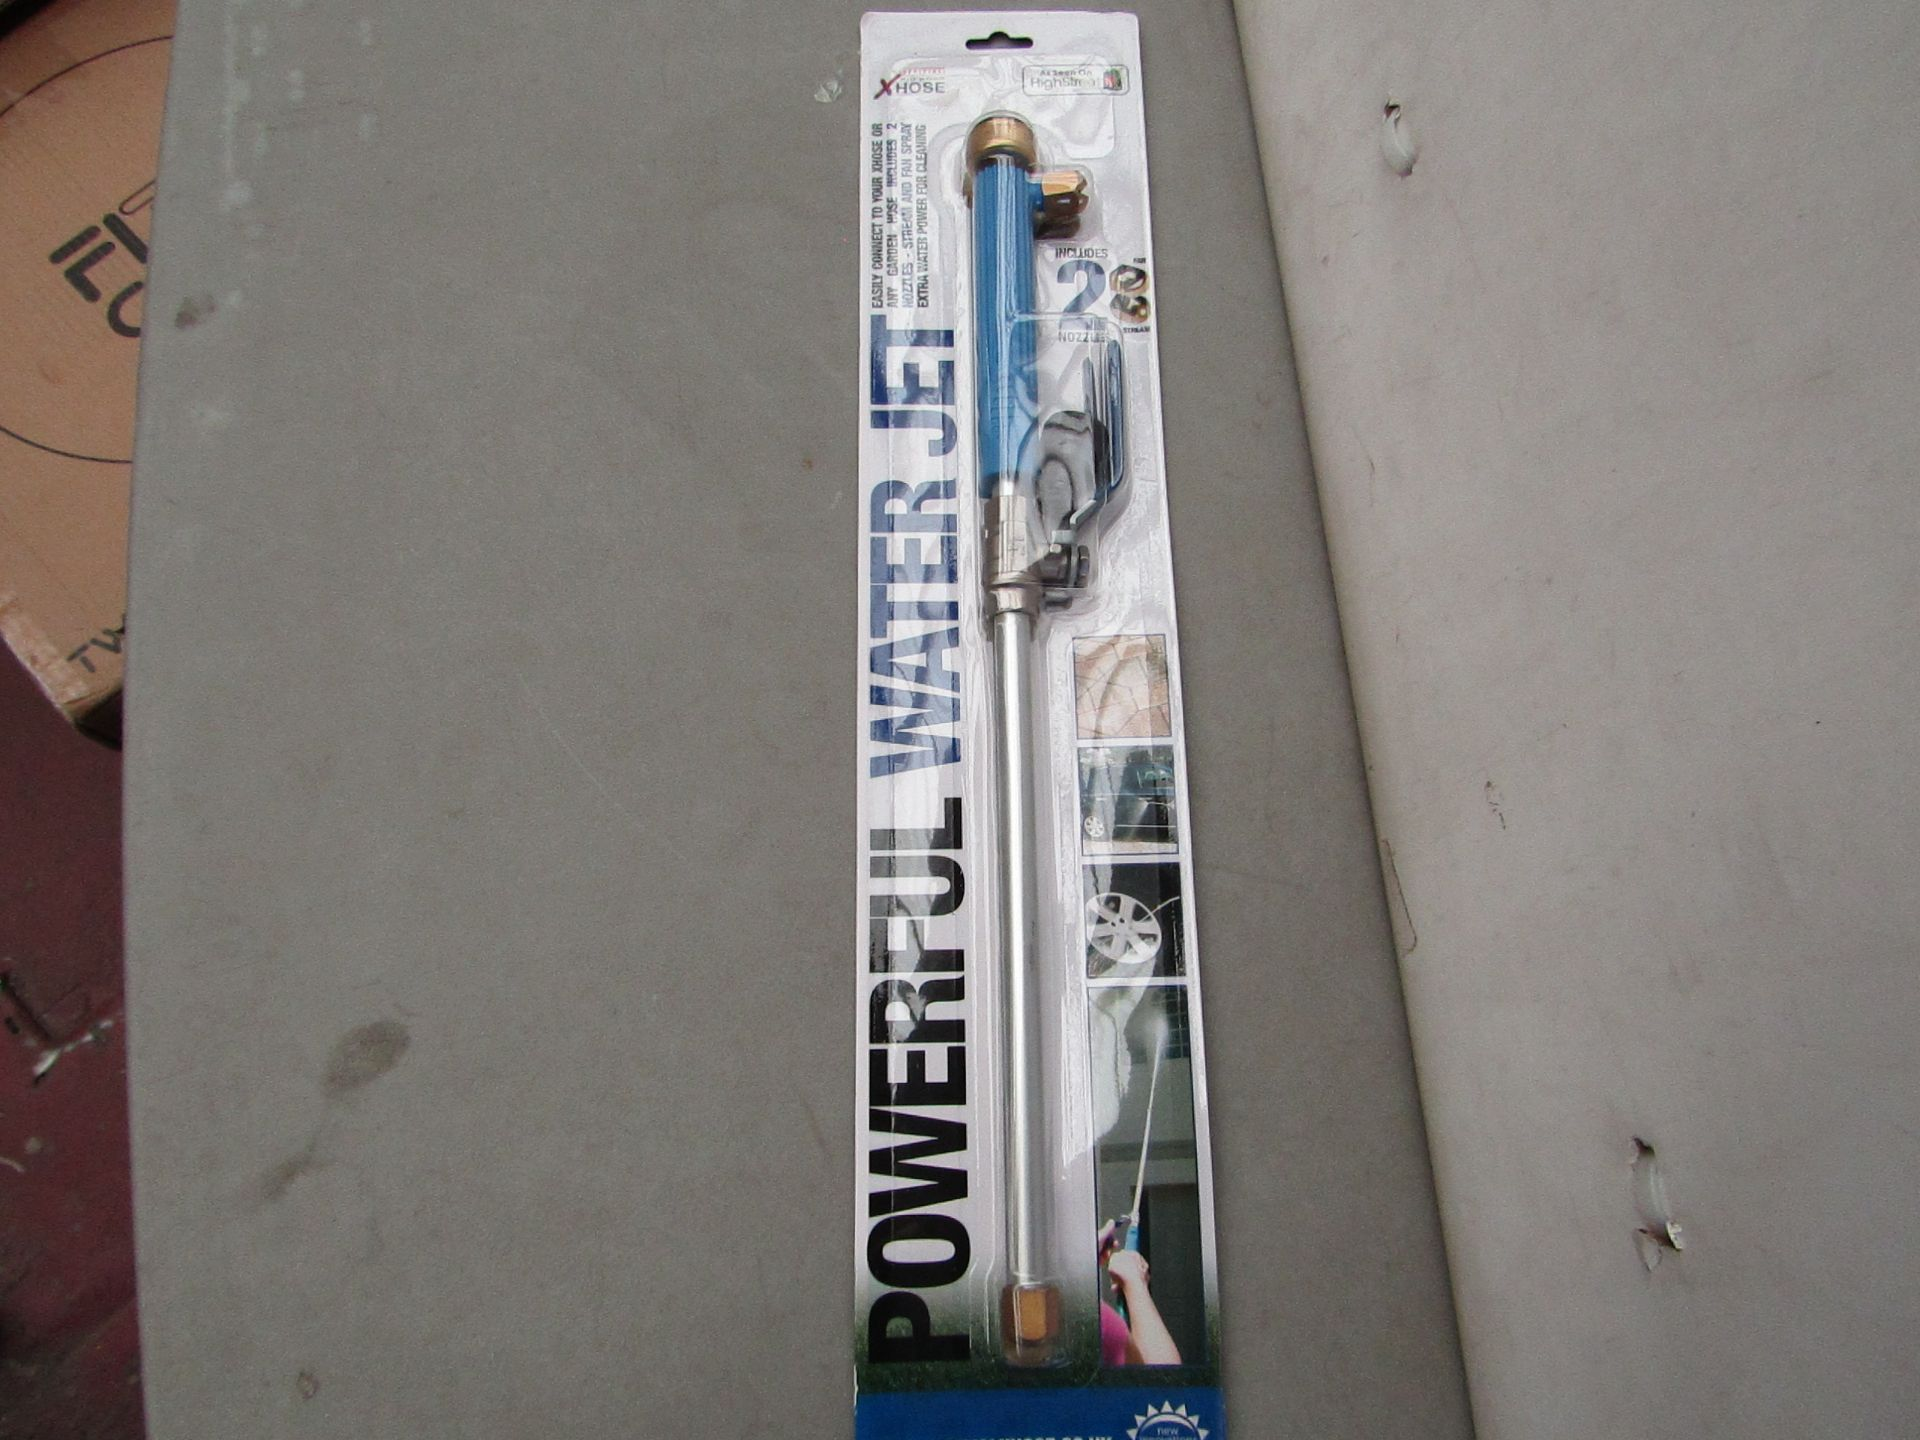 Lot 7 - | 1x | XHOSE POWERFUL WATER JET ACCESSORY | NEW | NO ONLINE RESALE |